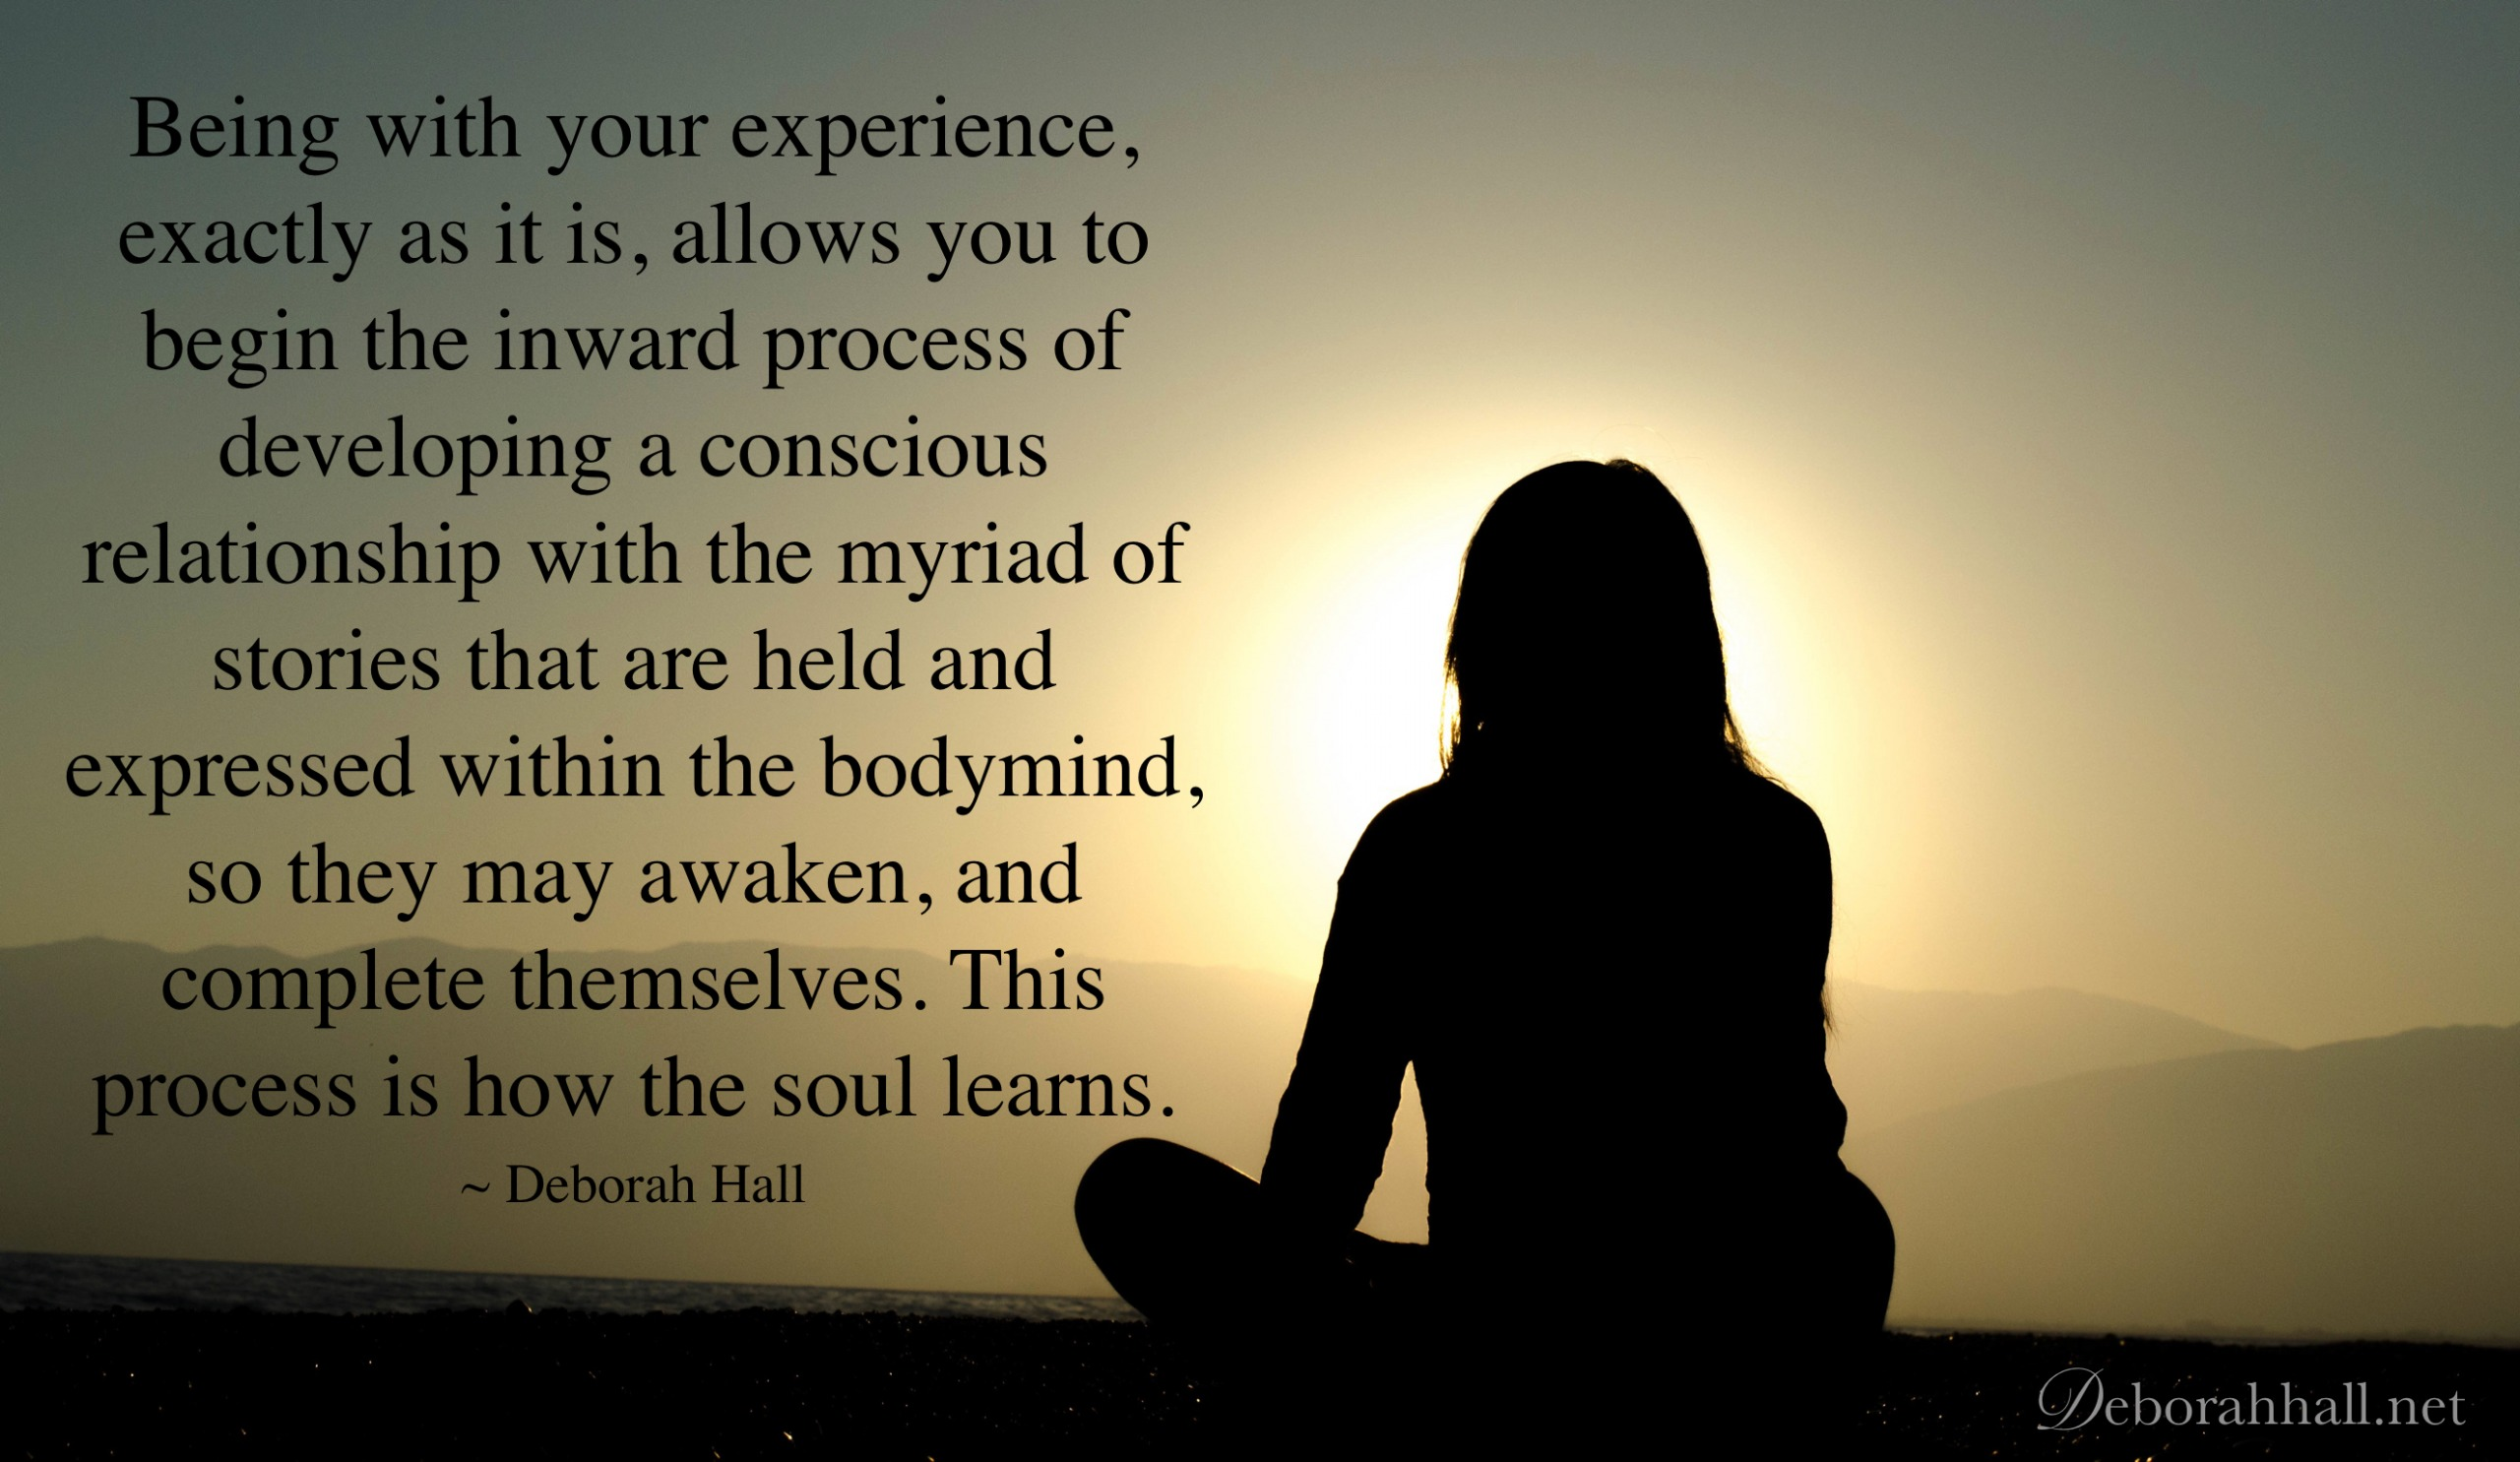 being with your experience